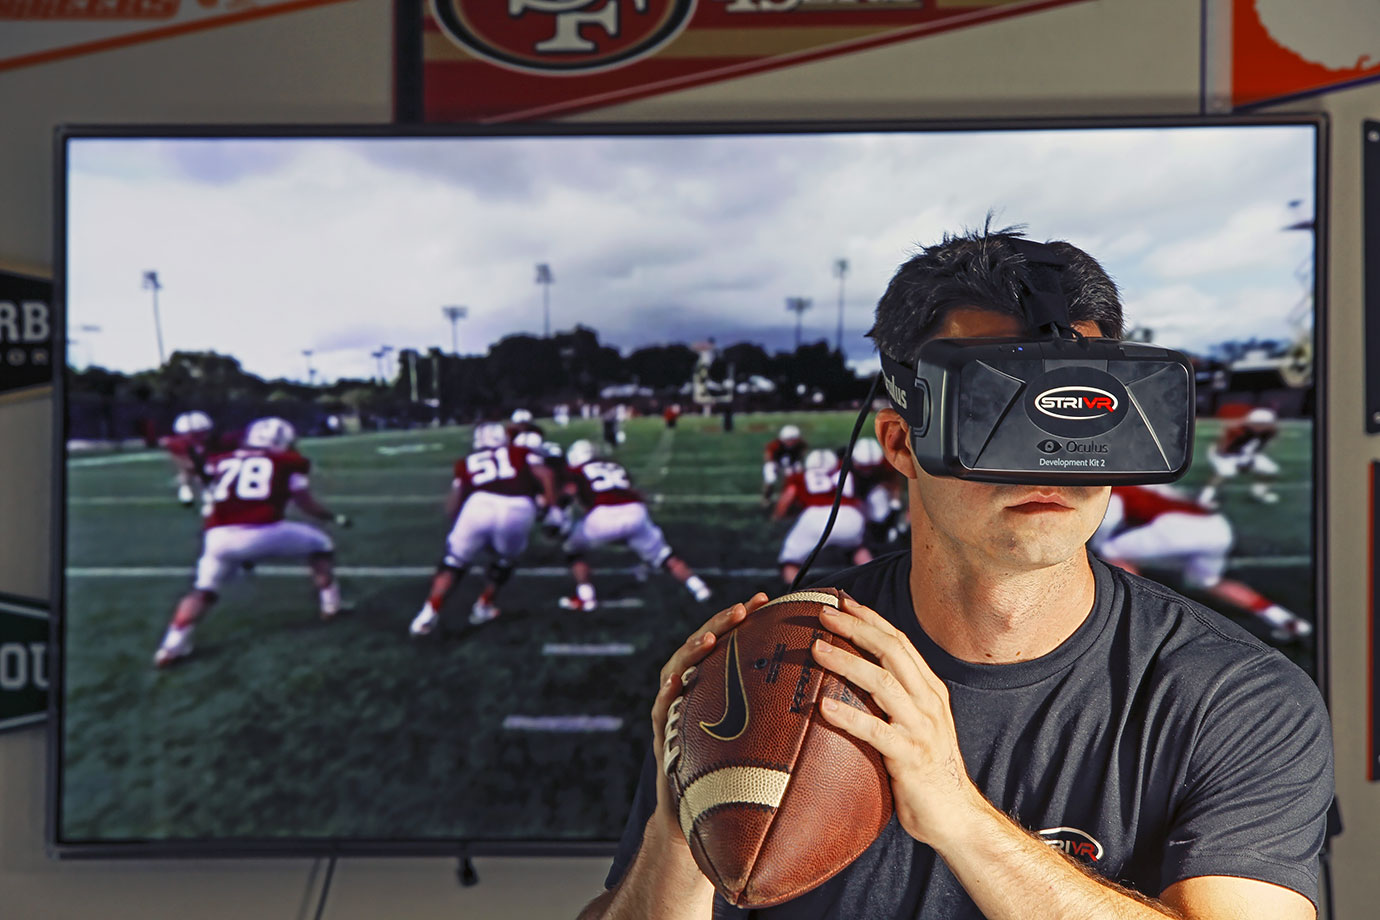 Danny Belch models a virtual reality headset during a photo shoot on July 28, 2015 at STRIVR Lab in Menlo Park, Calif. Developed at Stanford in 2014, the product replays game footage in 3D, and is intended for football film study and review. It is currently in use by several NCAA and NFL teams.